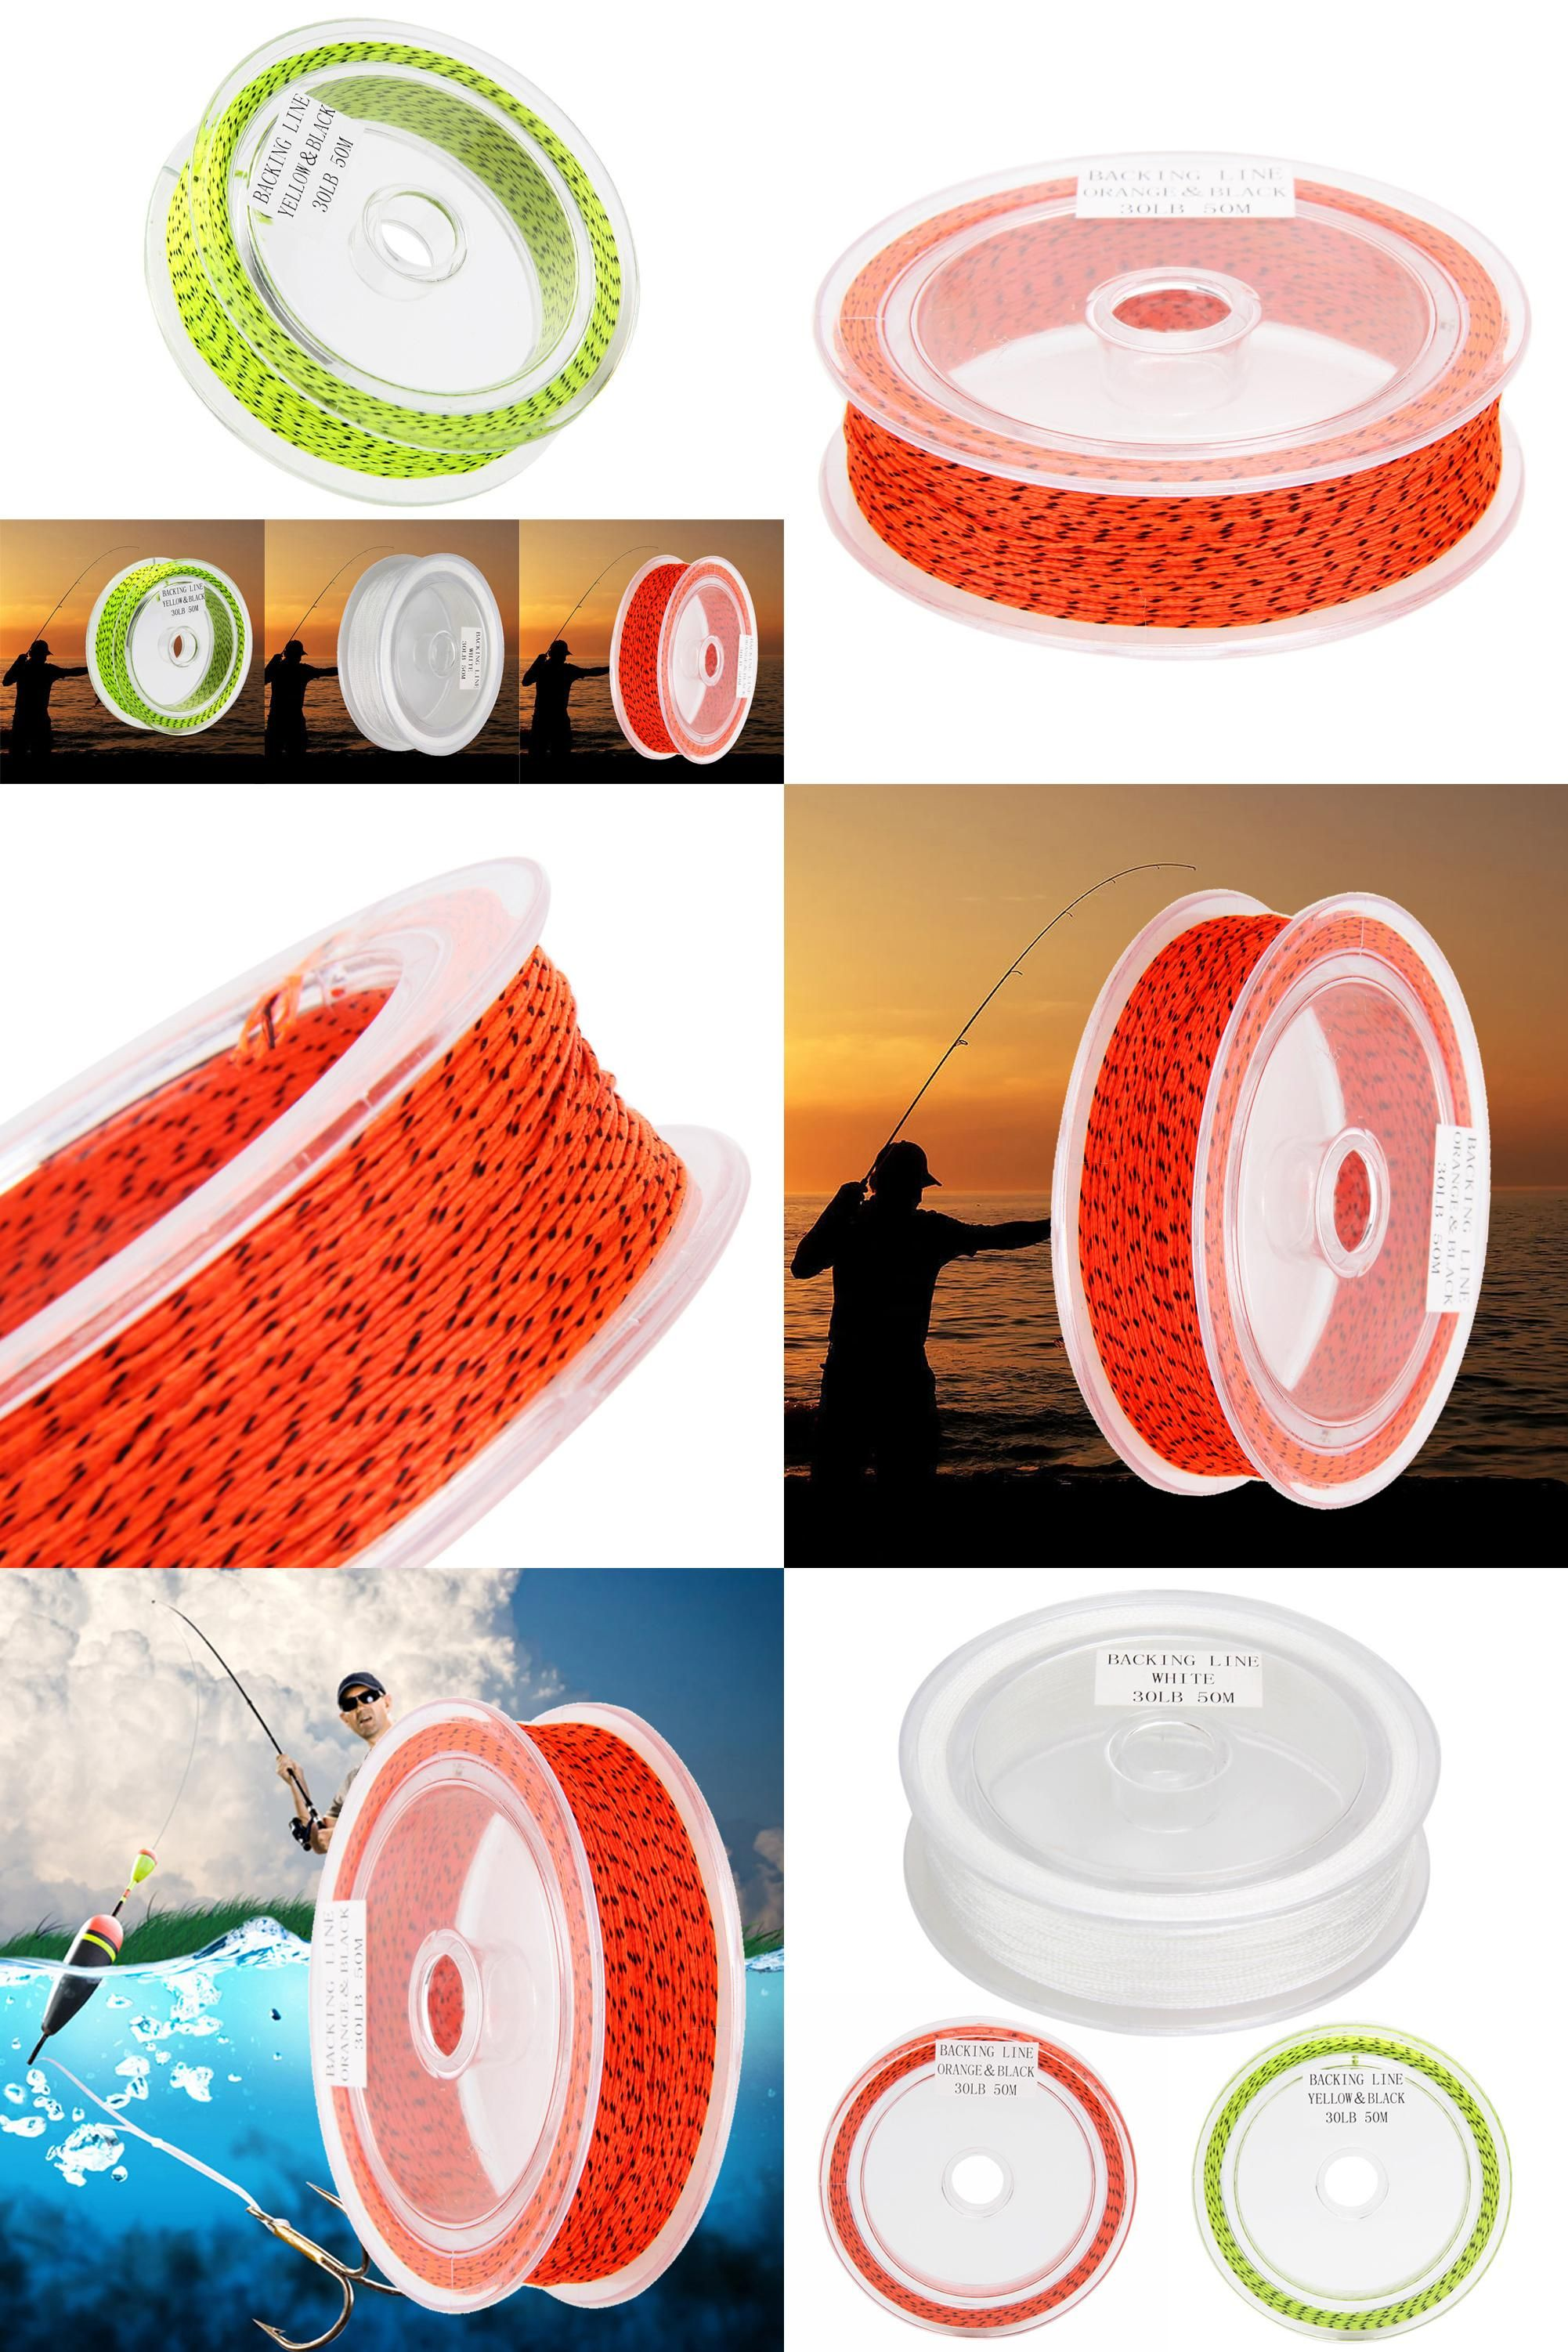 Visit to Buy] fly fishing 1 Piece White/Green/Red Color 50M Backing ...